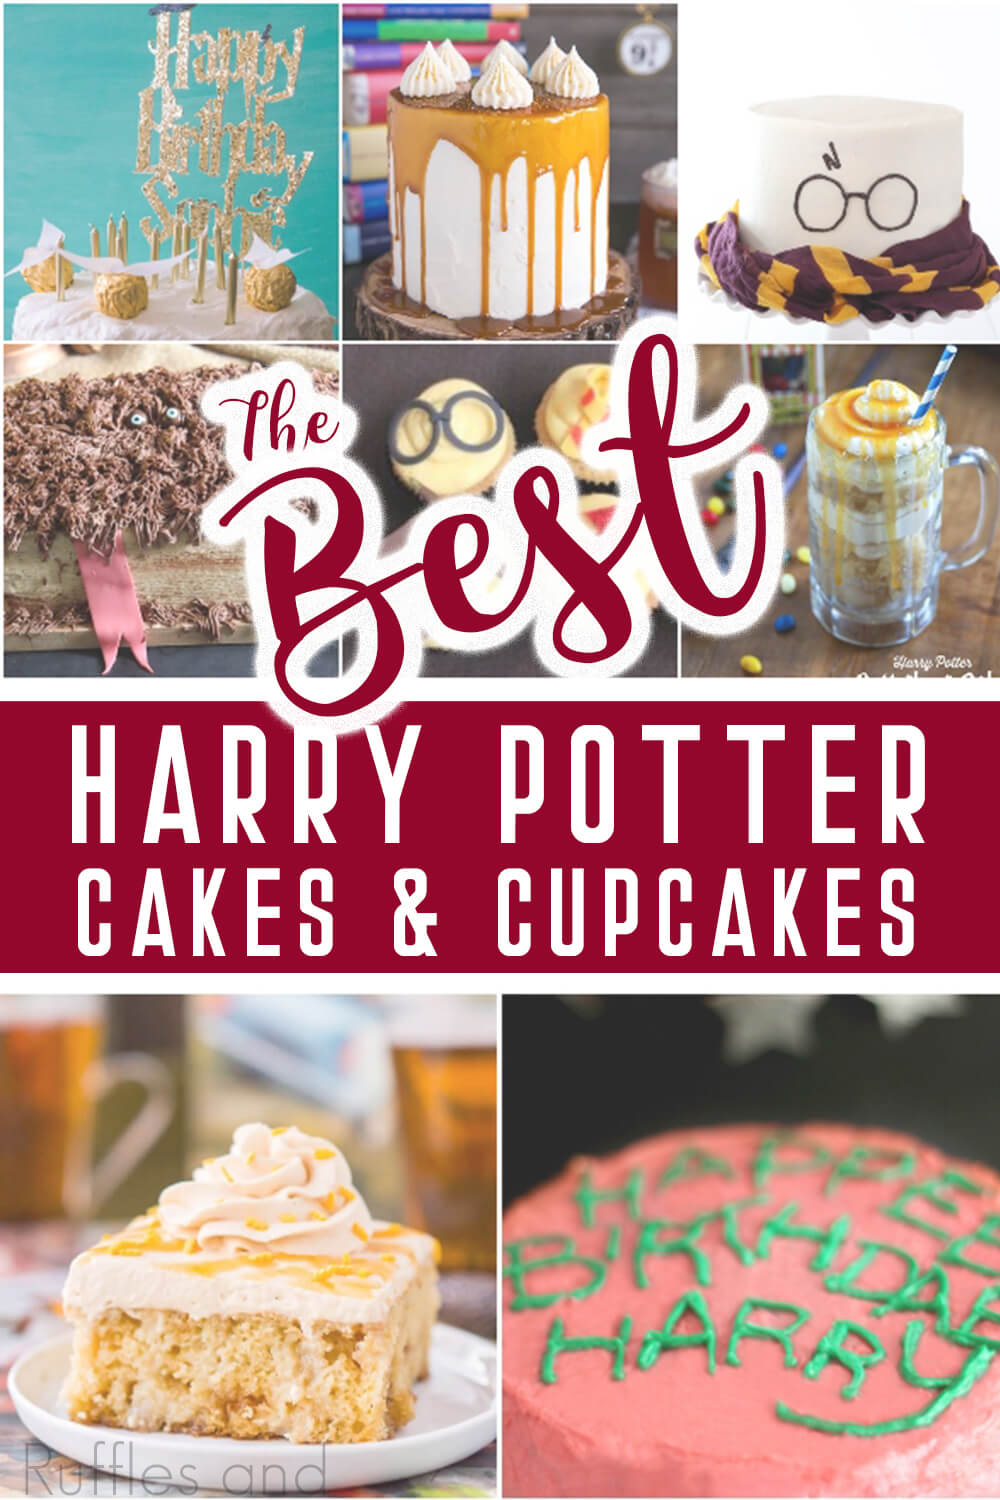 photo collage of cake recipes for a harry potter party with text which reads the best harry potter cakes & cupcakes